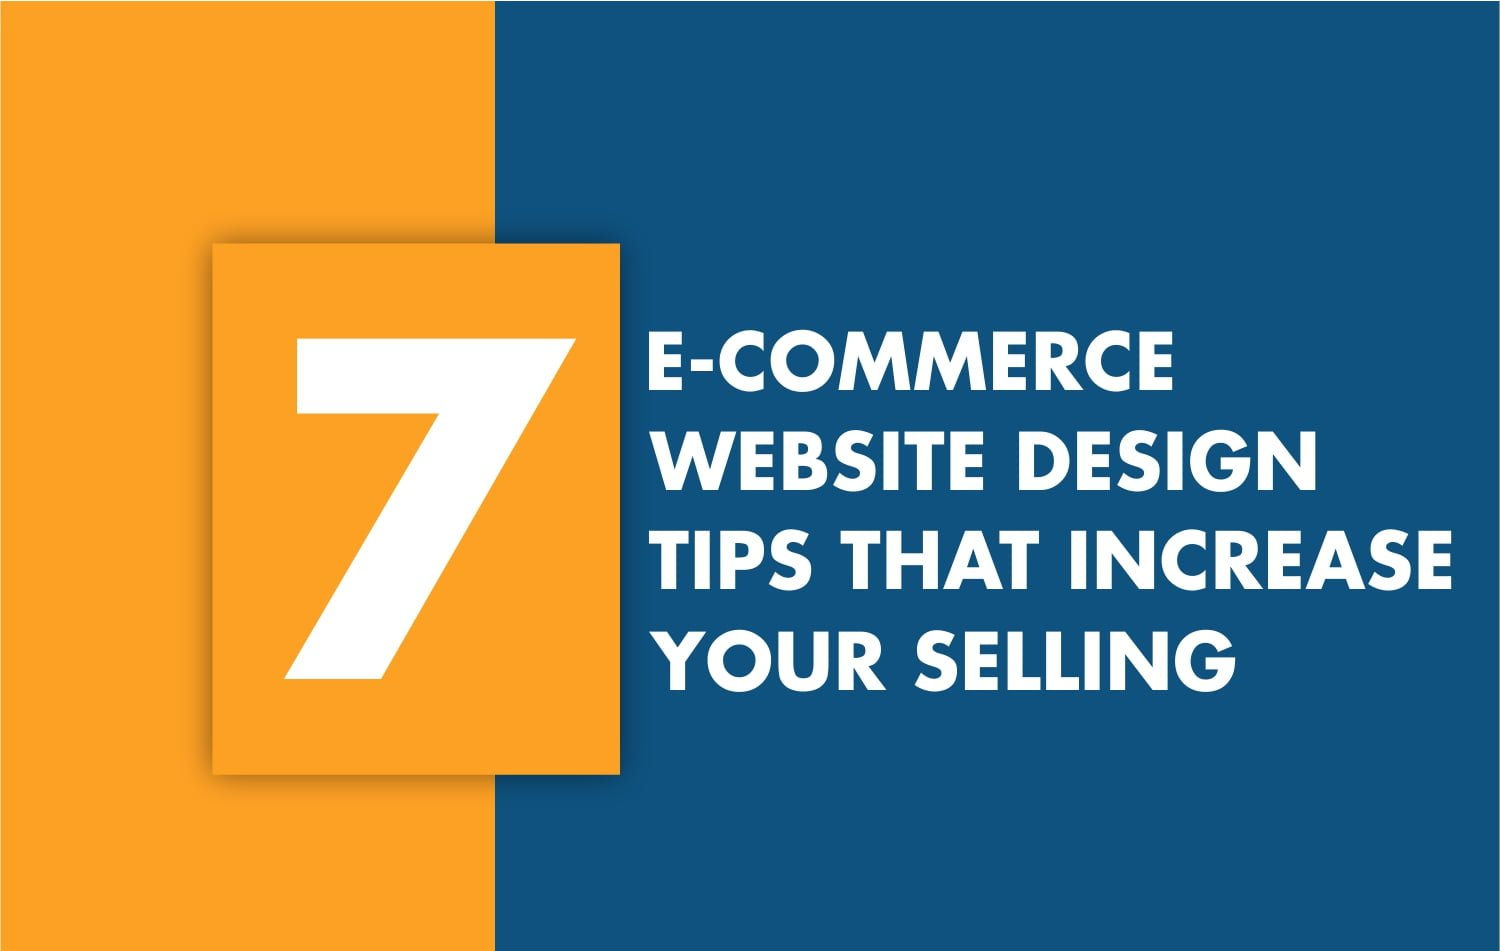 7 Ecommerce website design tips that increase your selling